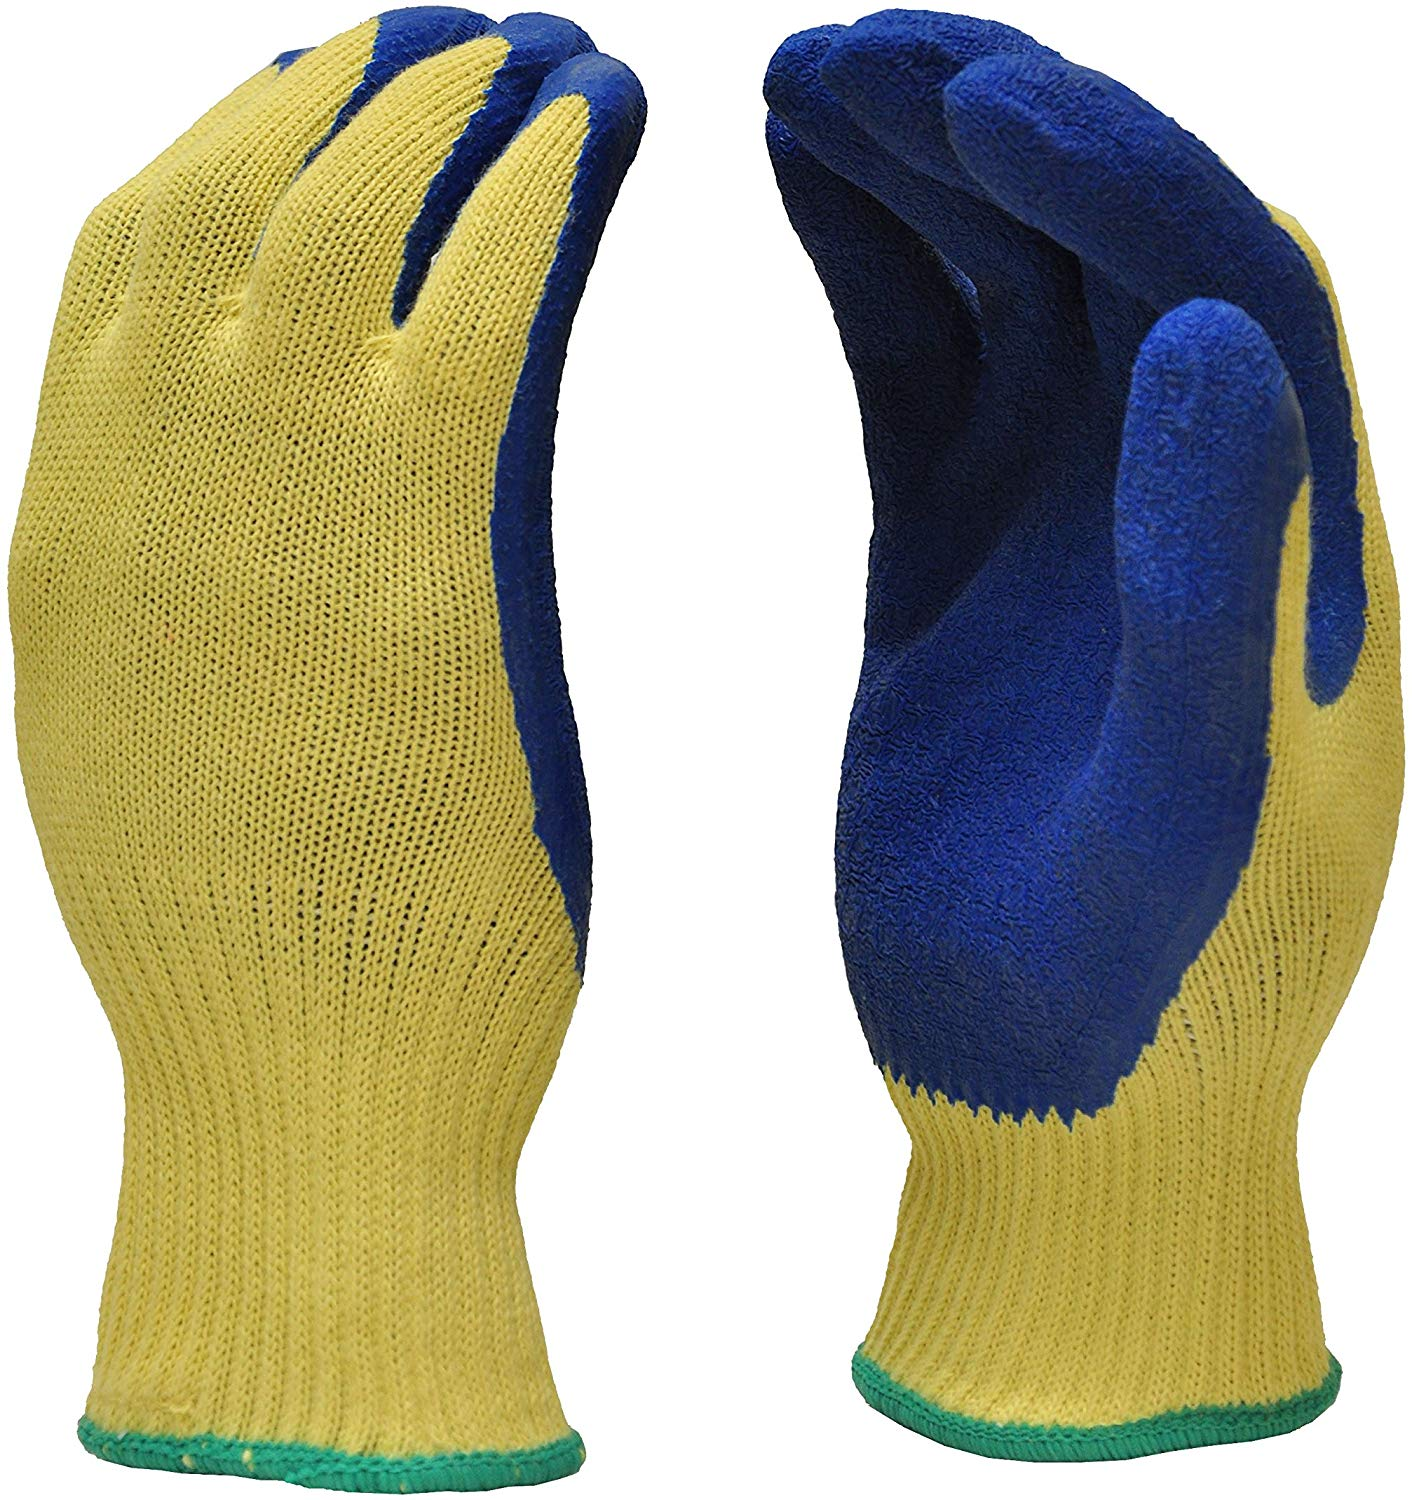 G & f products cut resistant work gloves, 100% kevlar knit work gloves